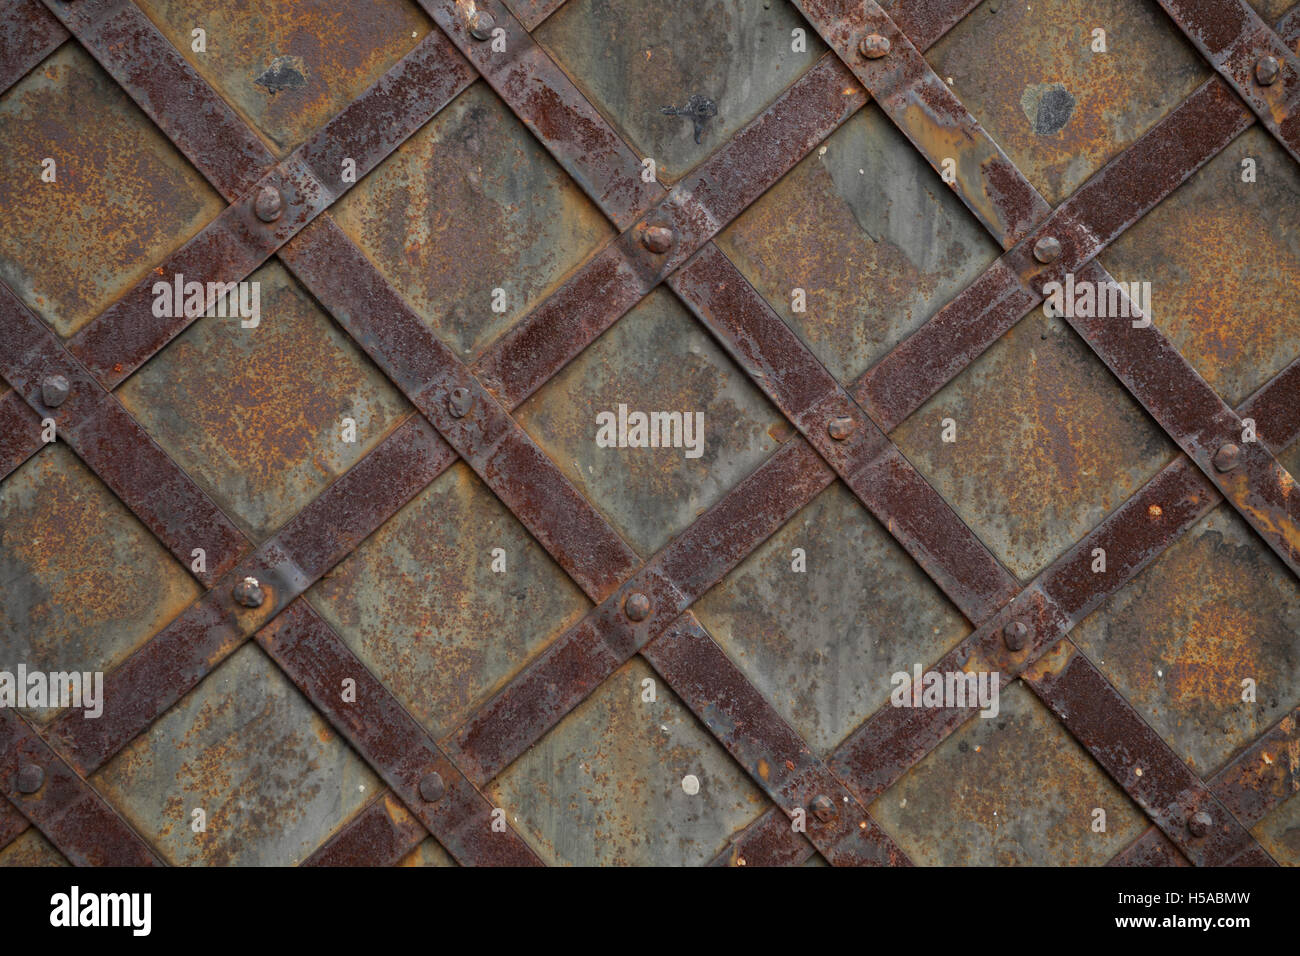 detail of old steel door or grid pattern vintage background - Stock Image